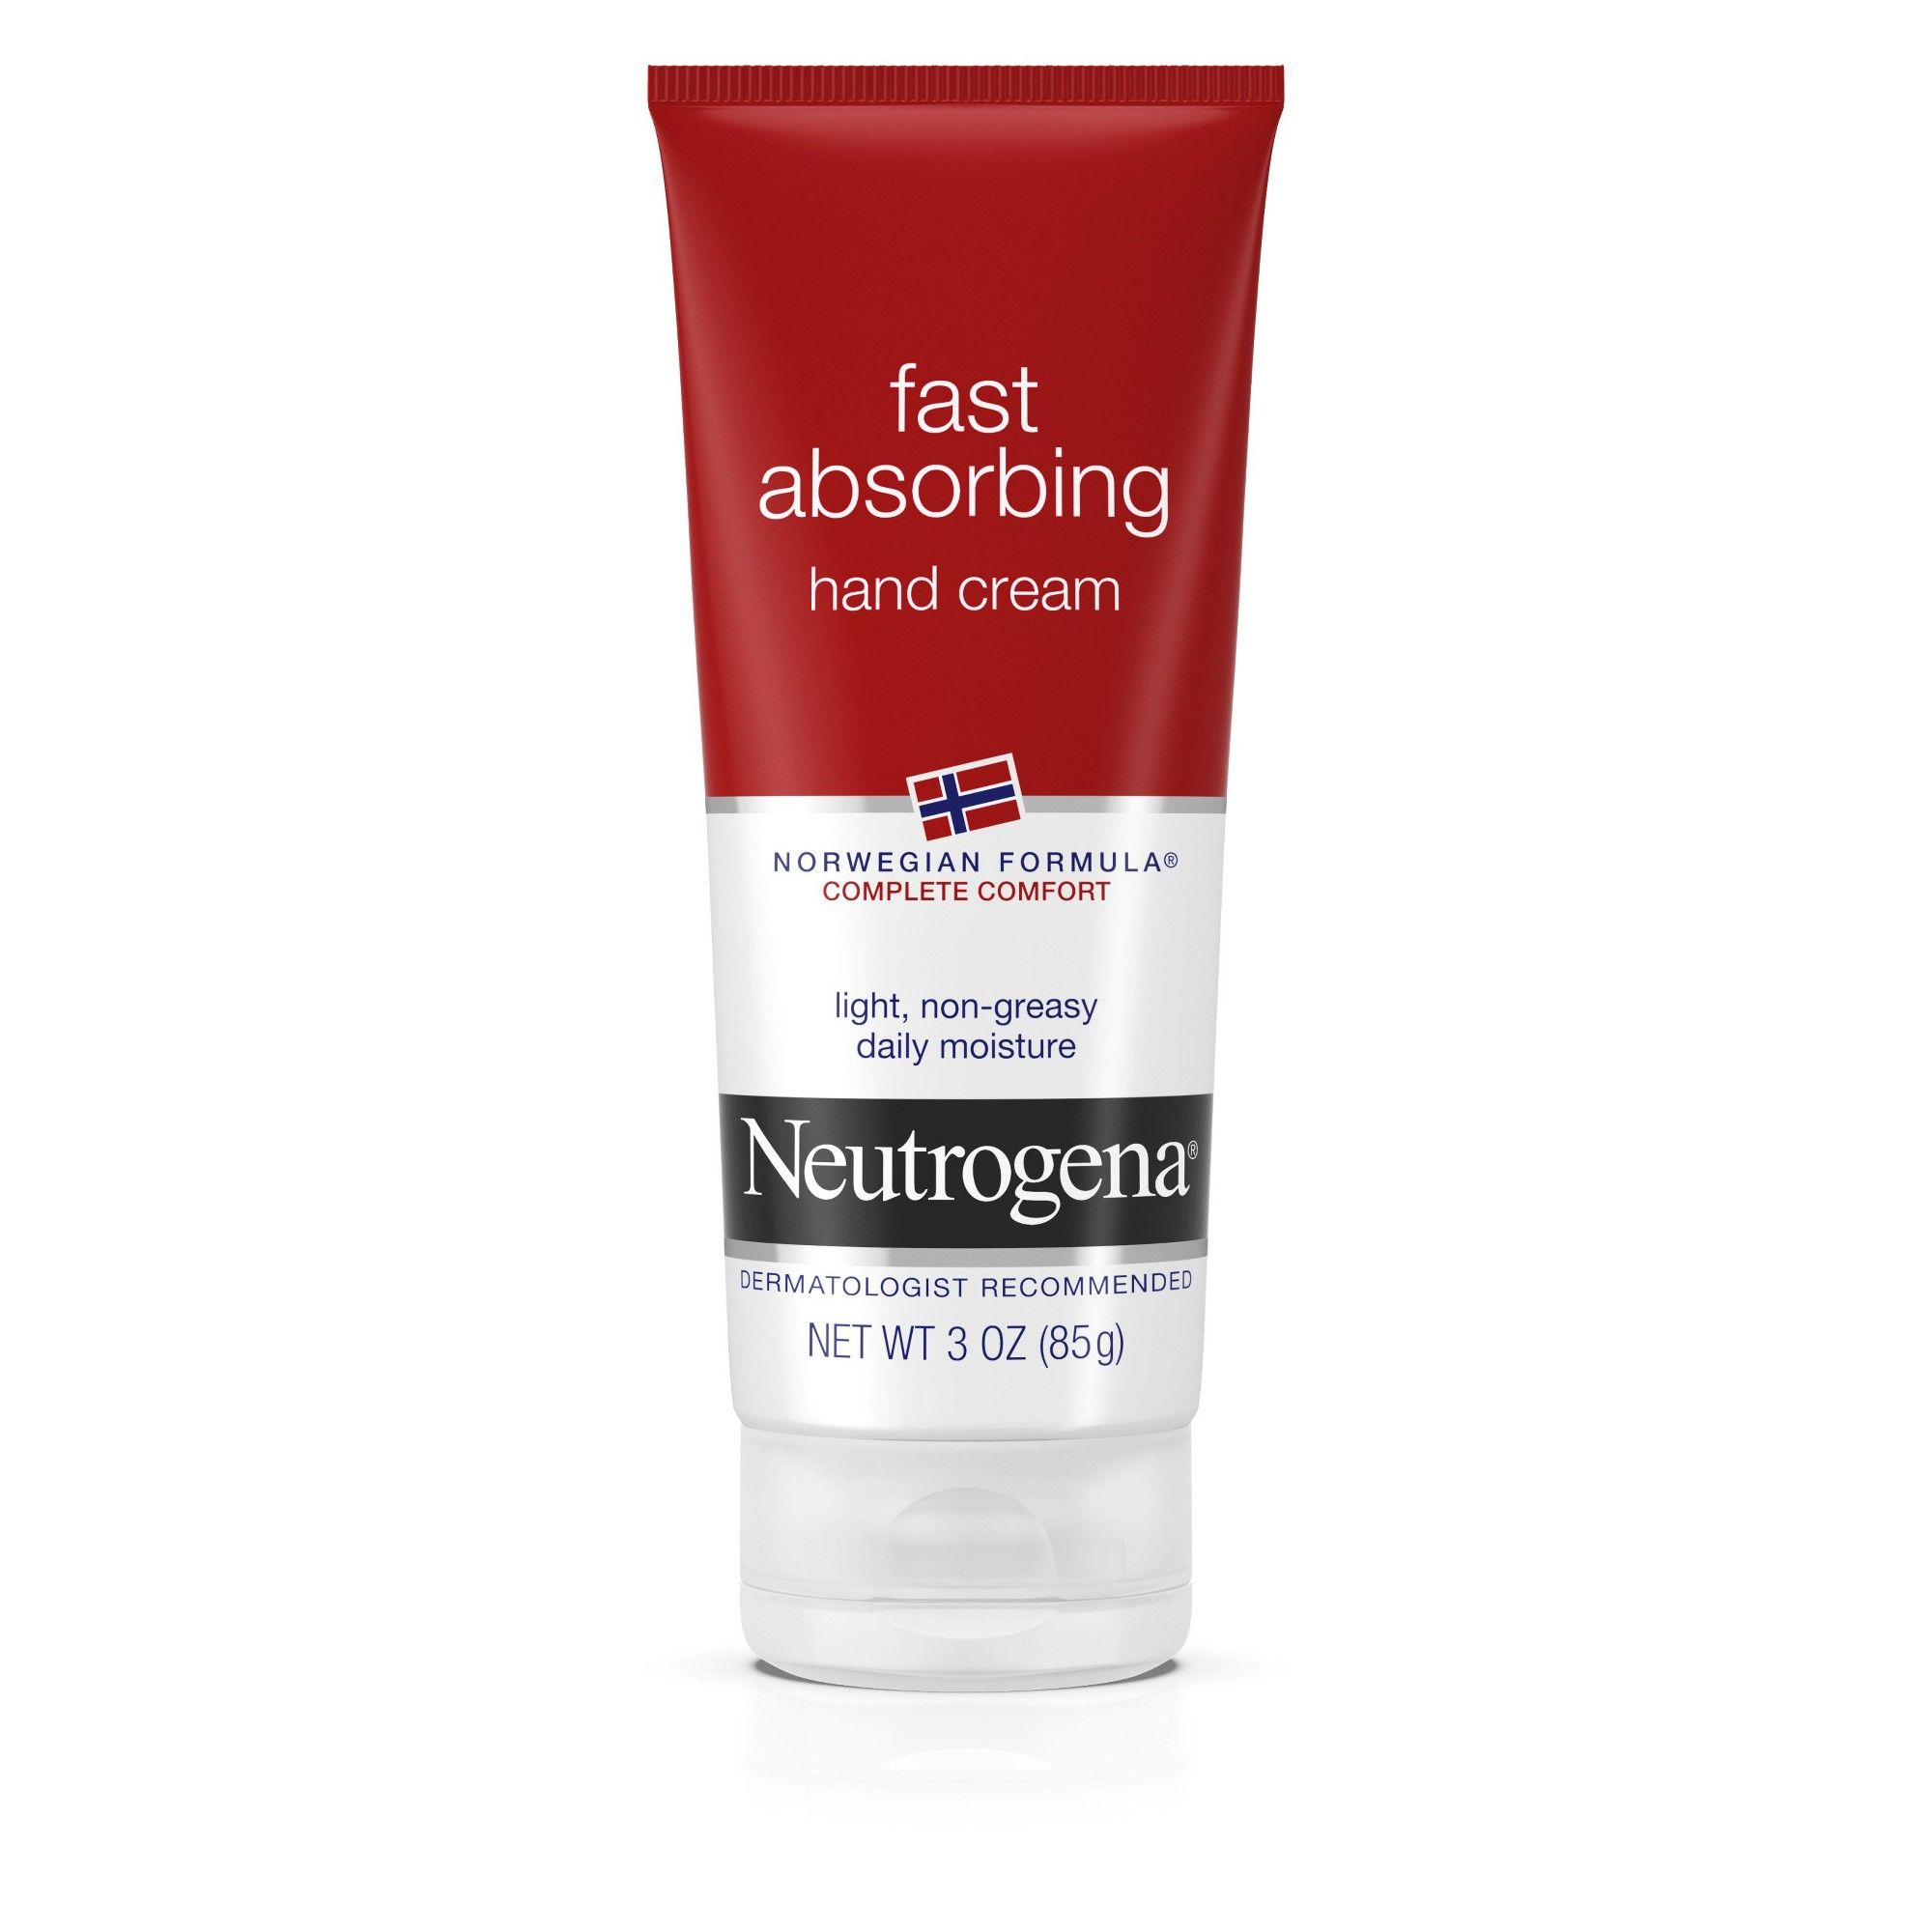 Neutrogena Norwegian Formula Fast Absorbing Hand Cream 3oz